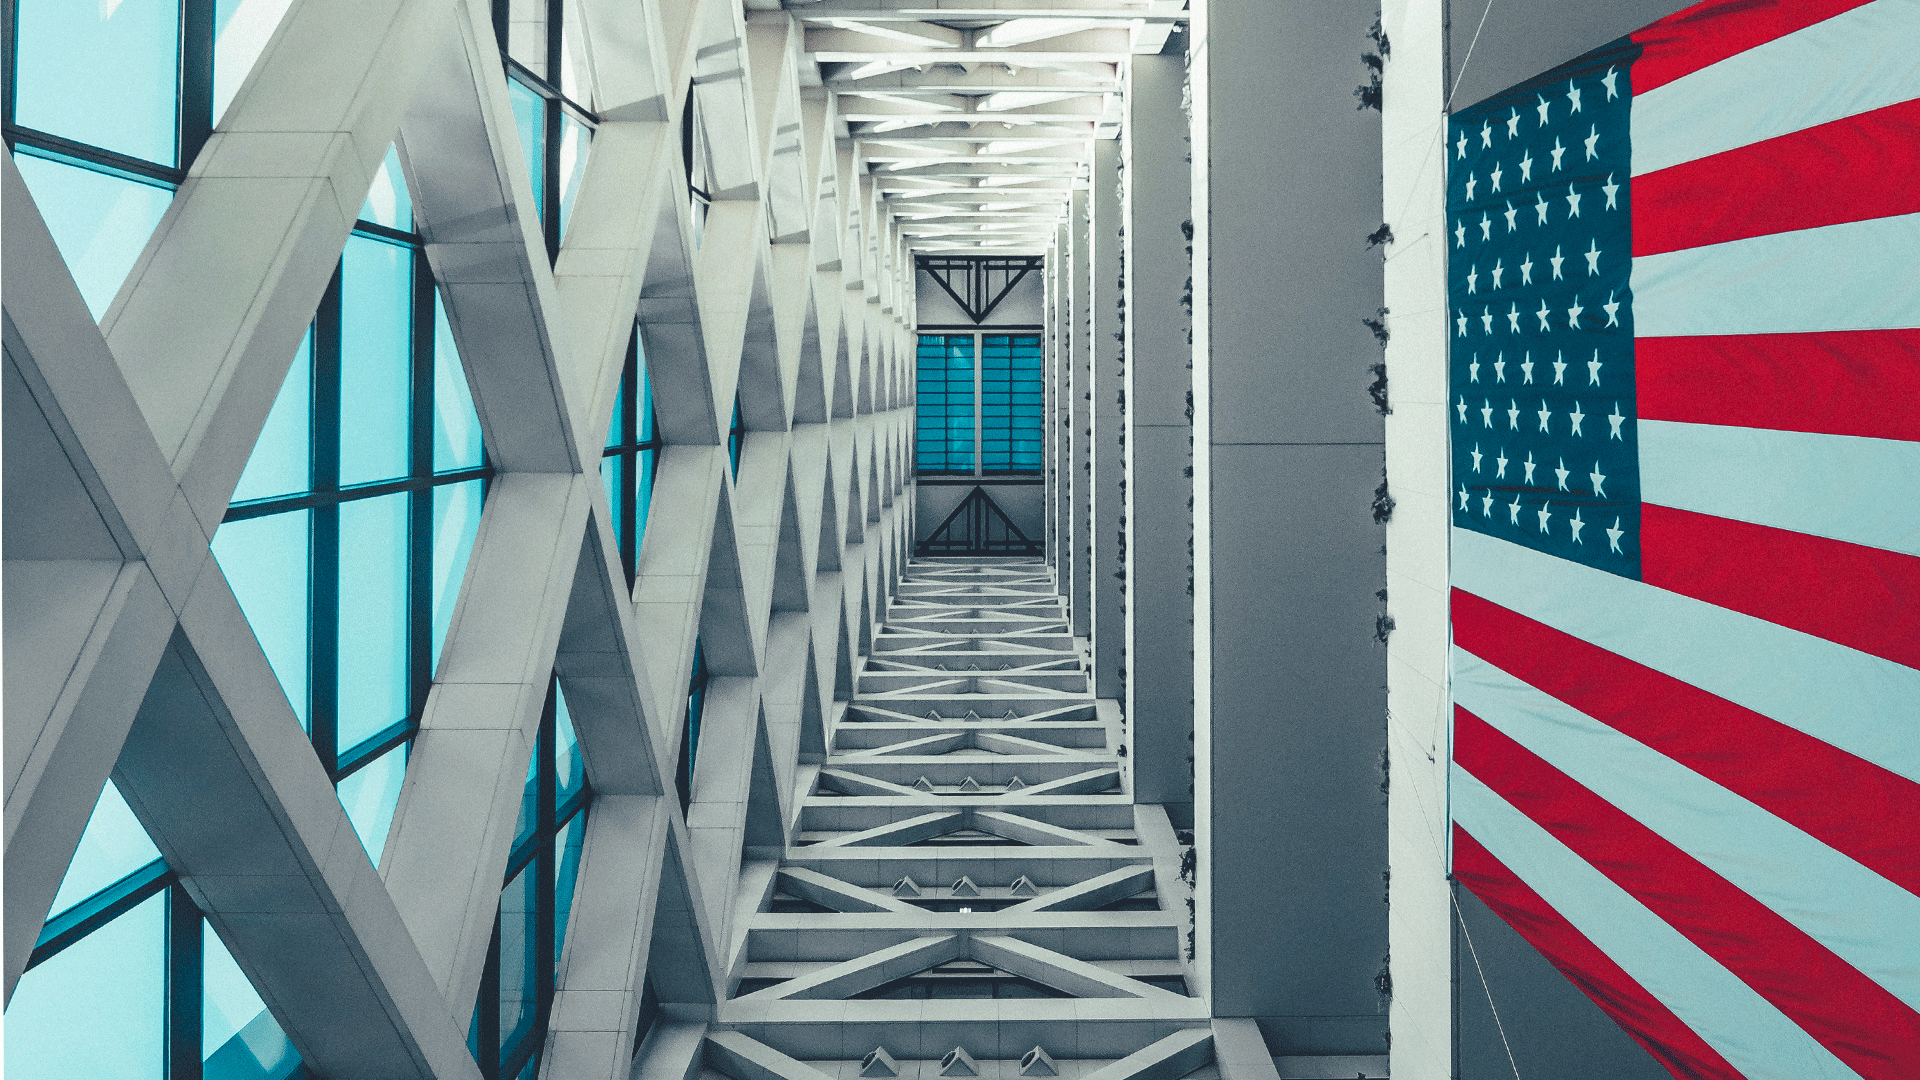 Lobby view with US flag